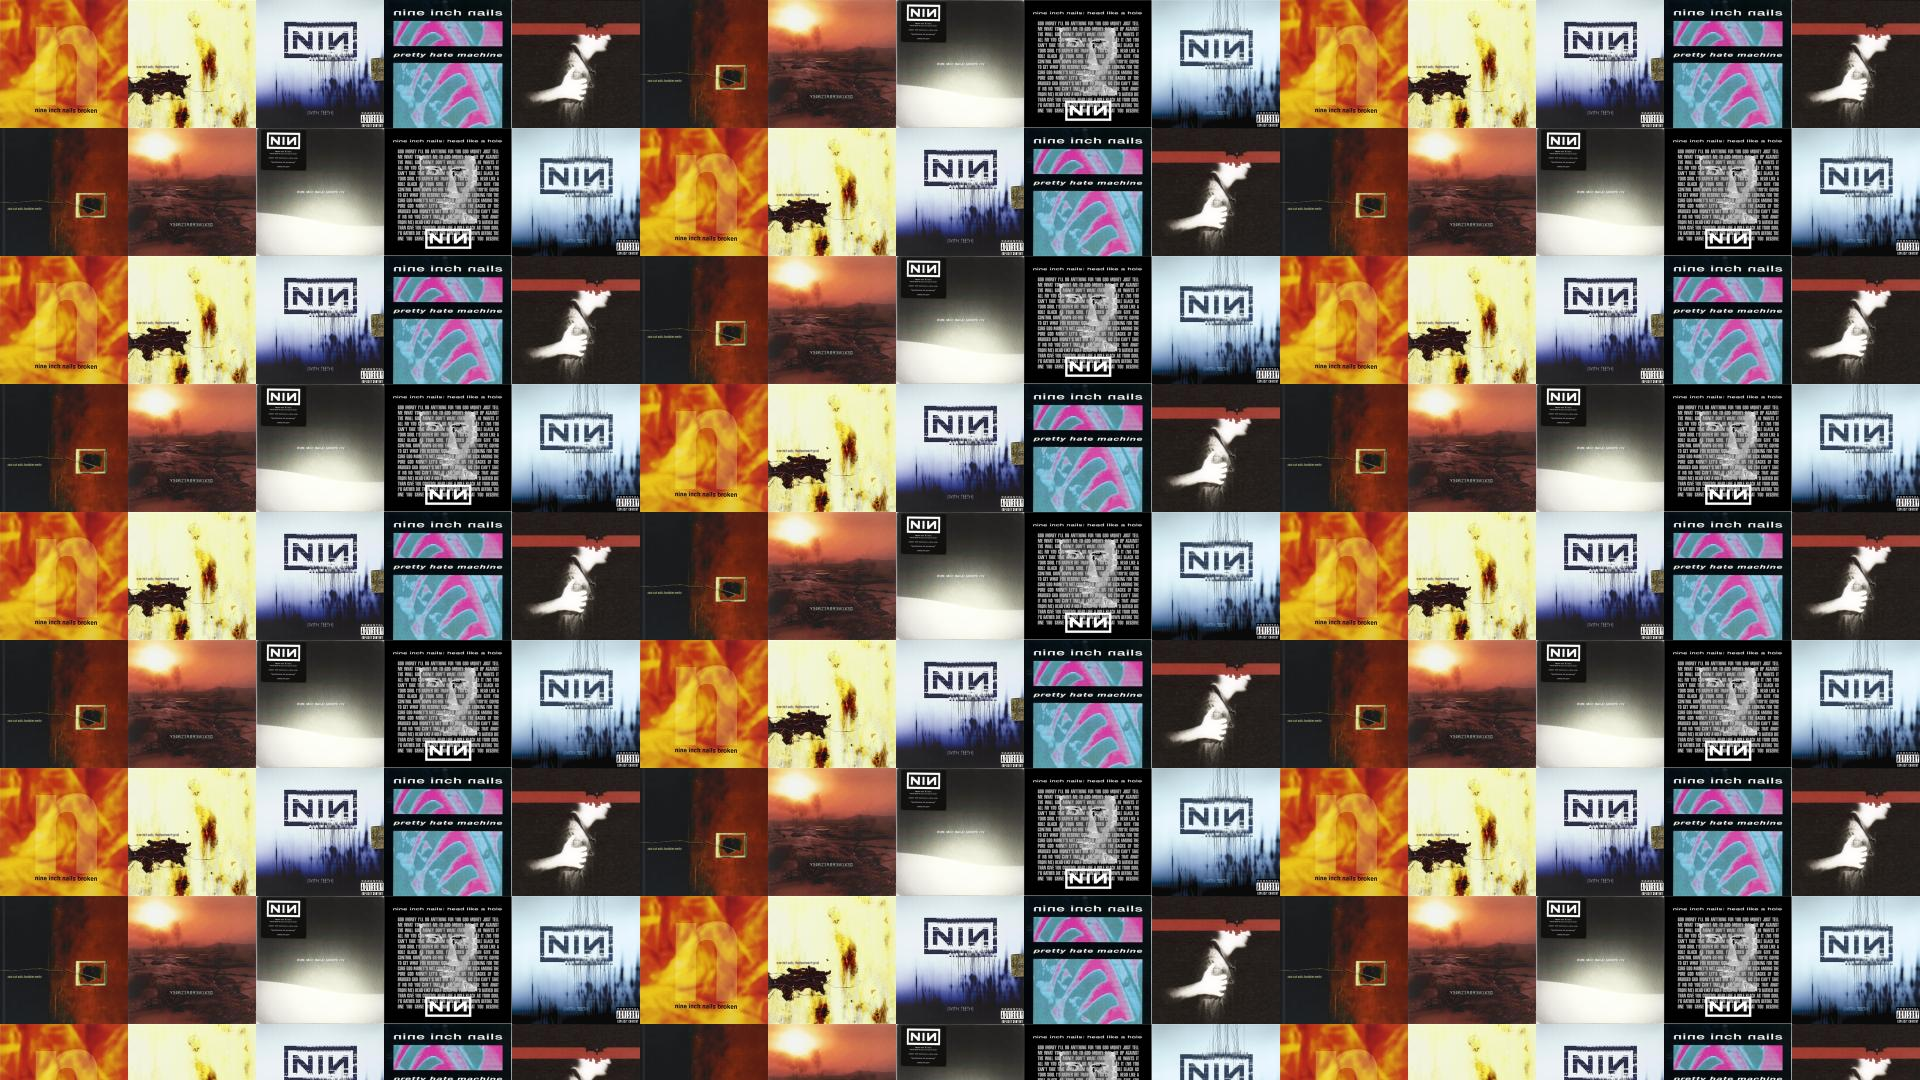 Nine Inch Nails Downward Spiral With Teeth Wallpaper Tiled